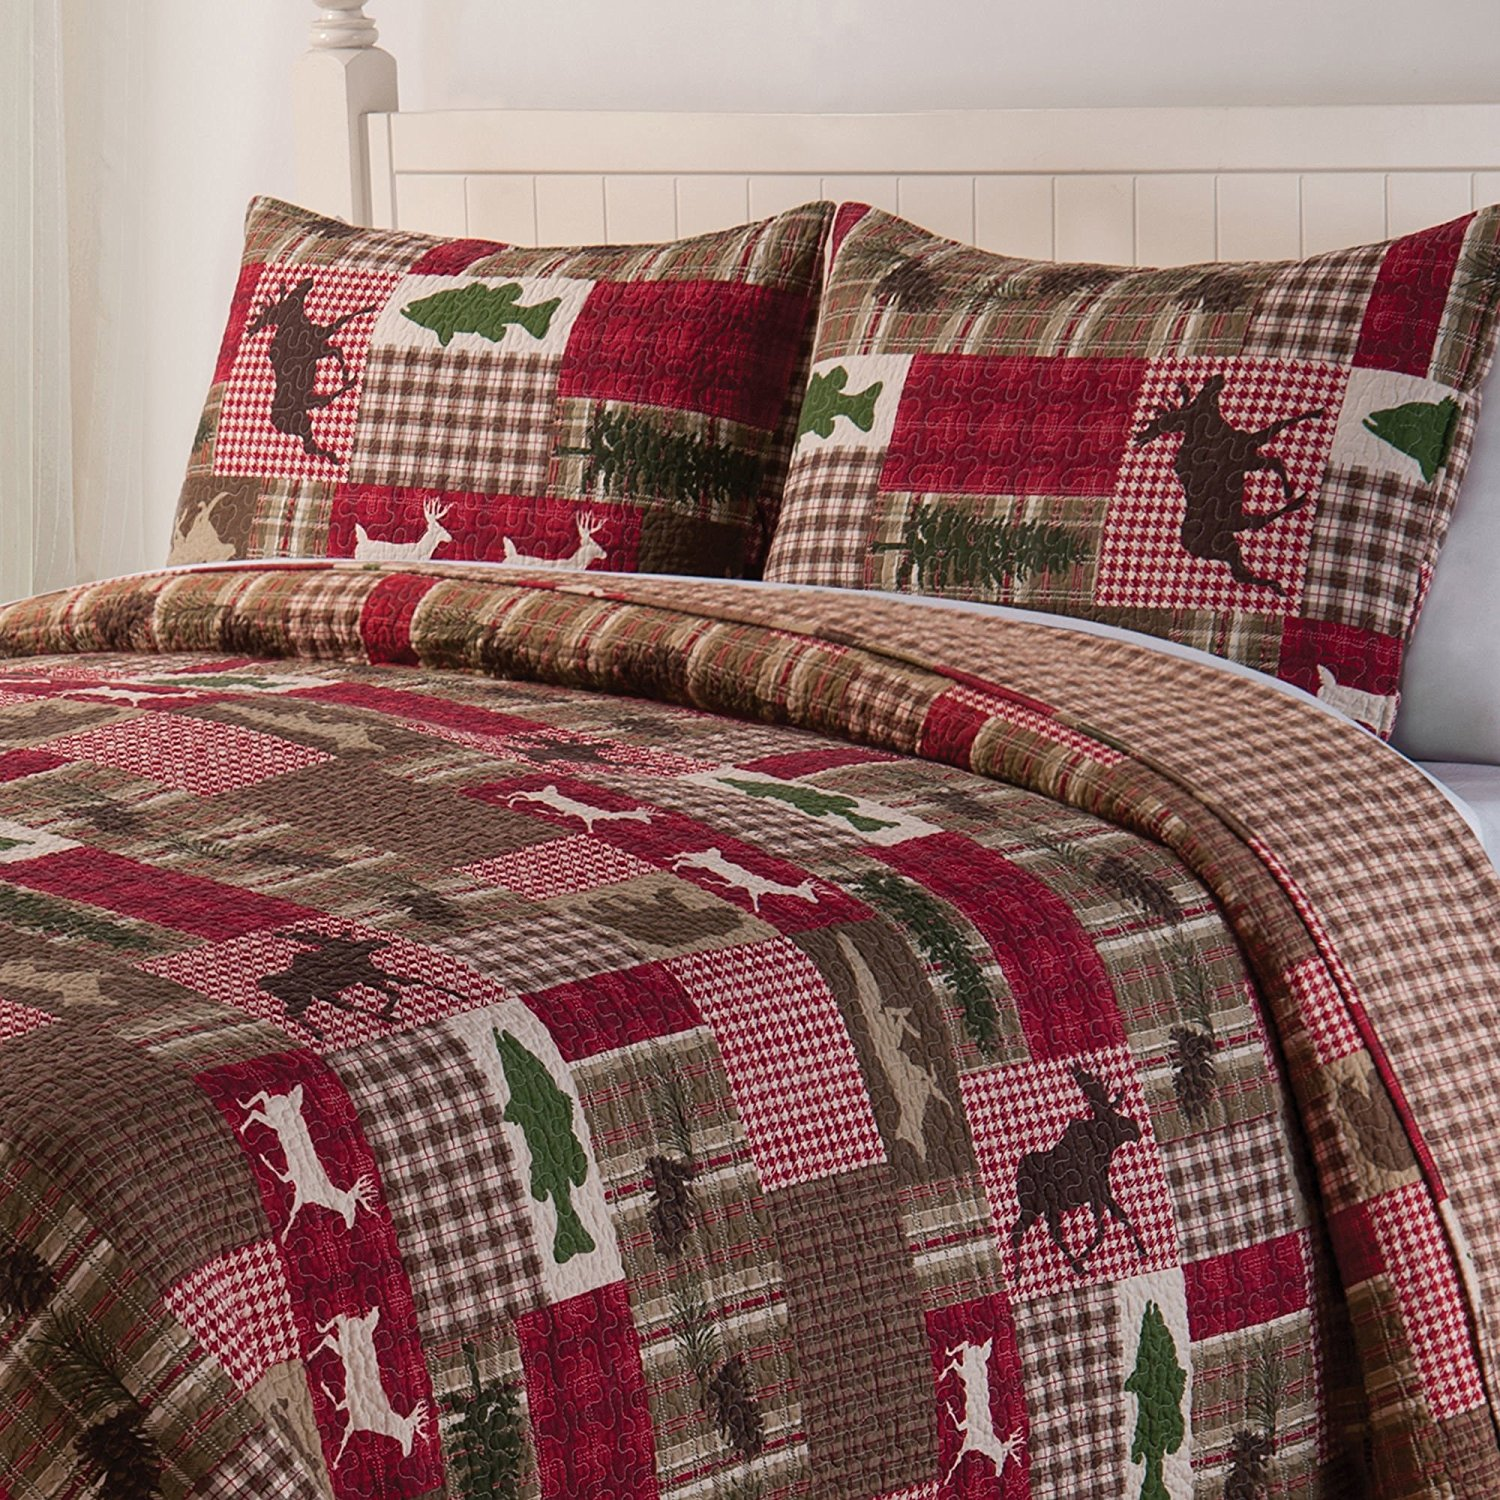 OS 3 Piece Green Red Brown Moose Deer Hunting Themed King Quilt Set, Cabin Themed Bedding Southwest Fish Plaid Checked Patchwork Wildlife Country Lodge Animal White, Cotton